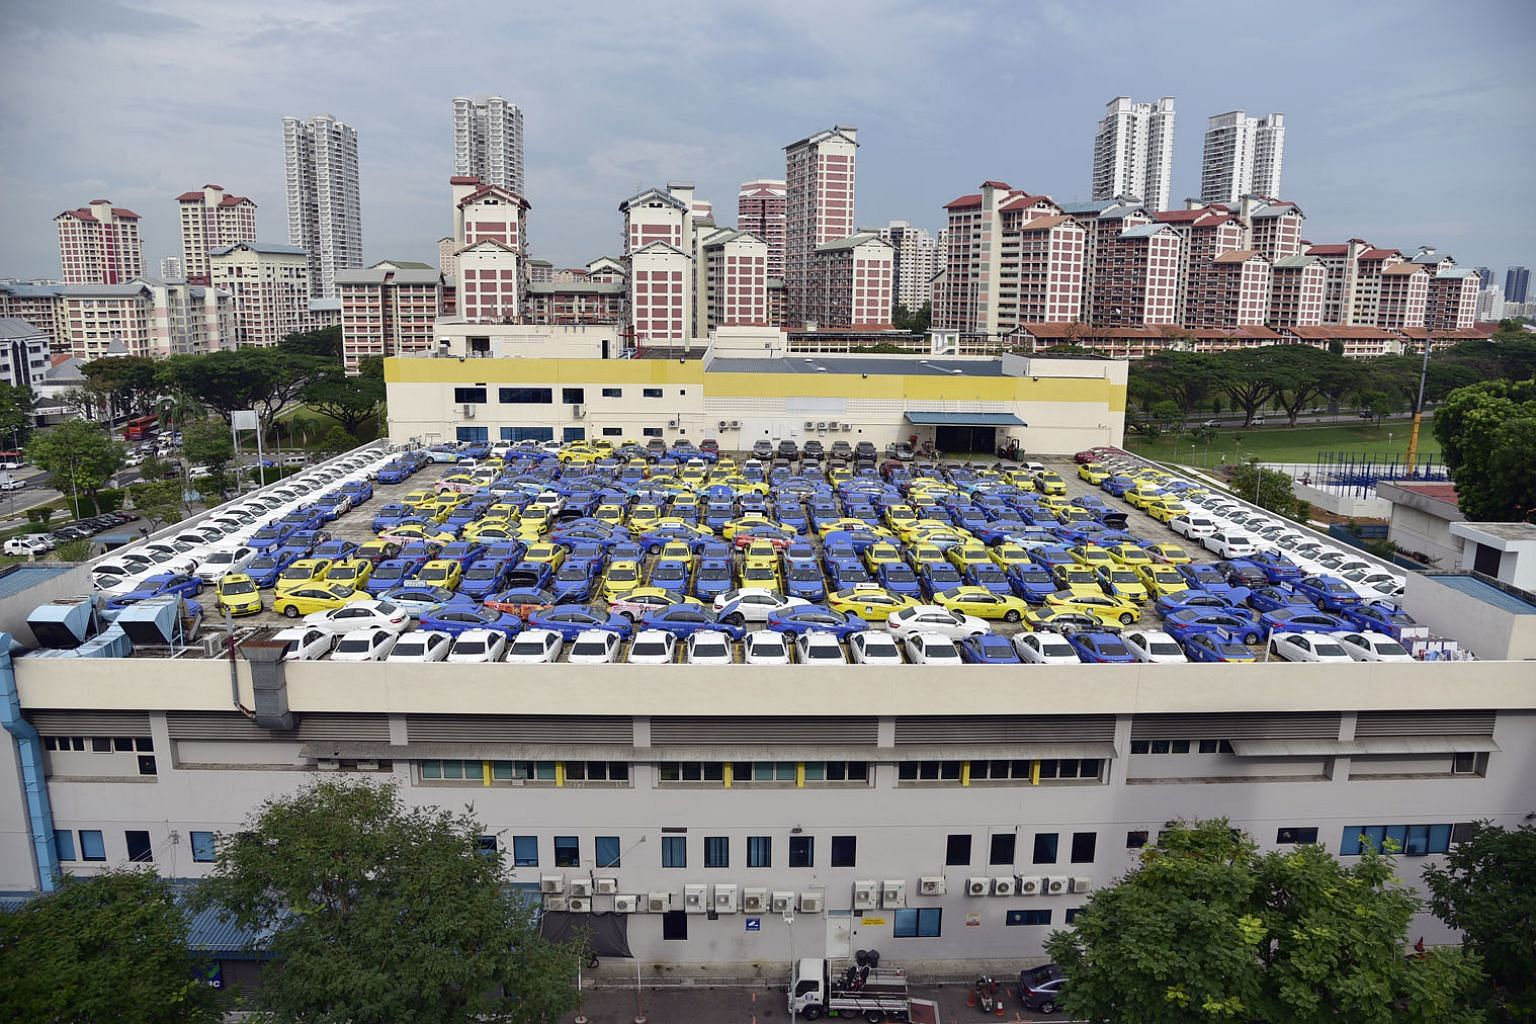 Taxis parked on the rooftop of the CityCab Building in Sin Ming. Since private-hire operators arrived in 2013, the taxi industry has been shrinking. There are now around 20,000 cabs on the road, down from around 28,000 at its peak. ST PHOTO: DESMOND